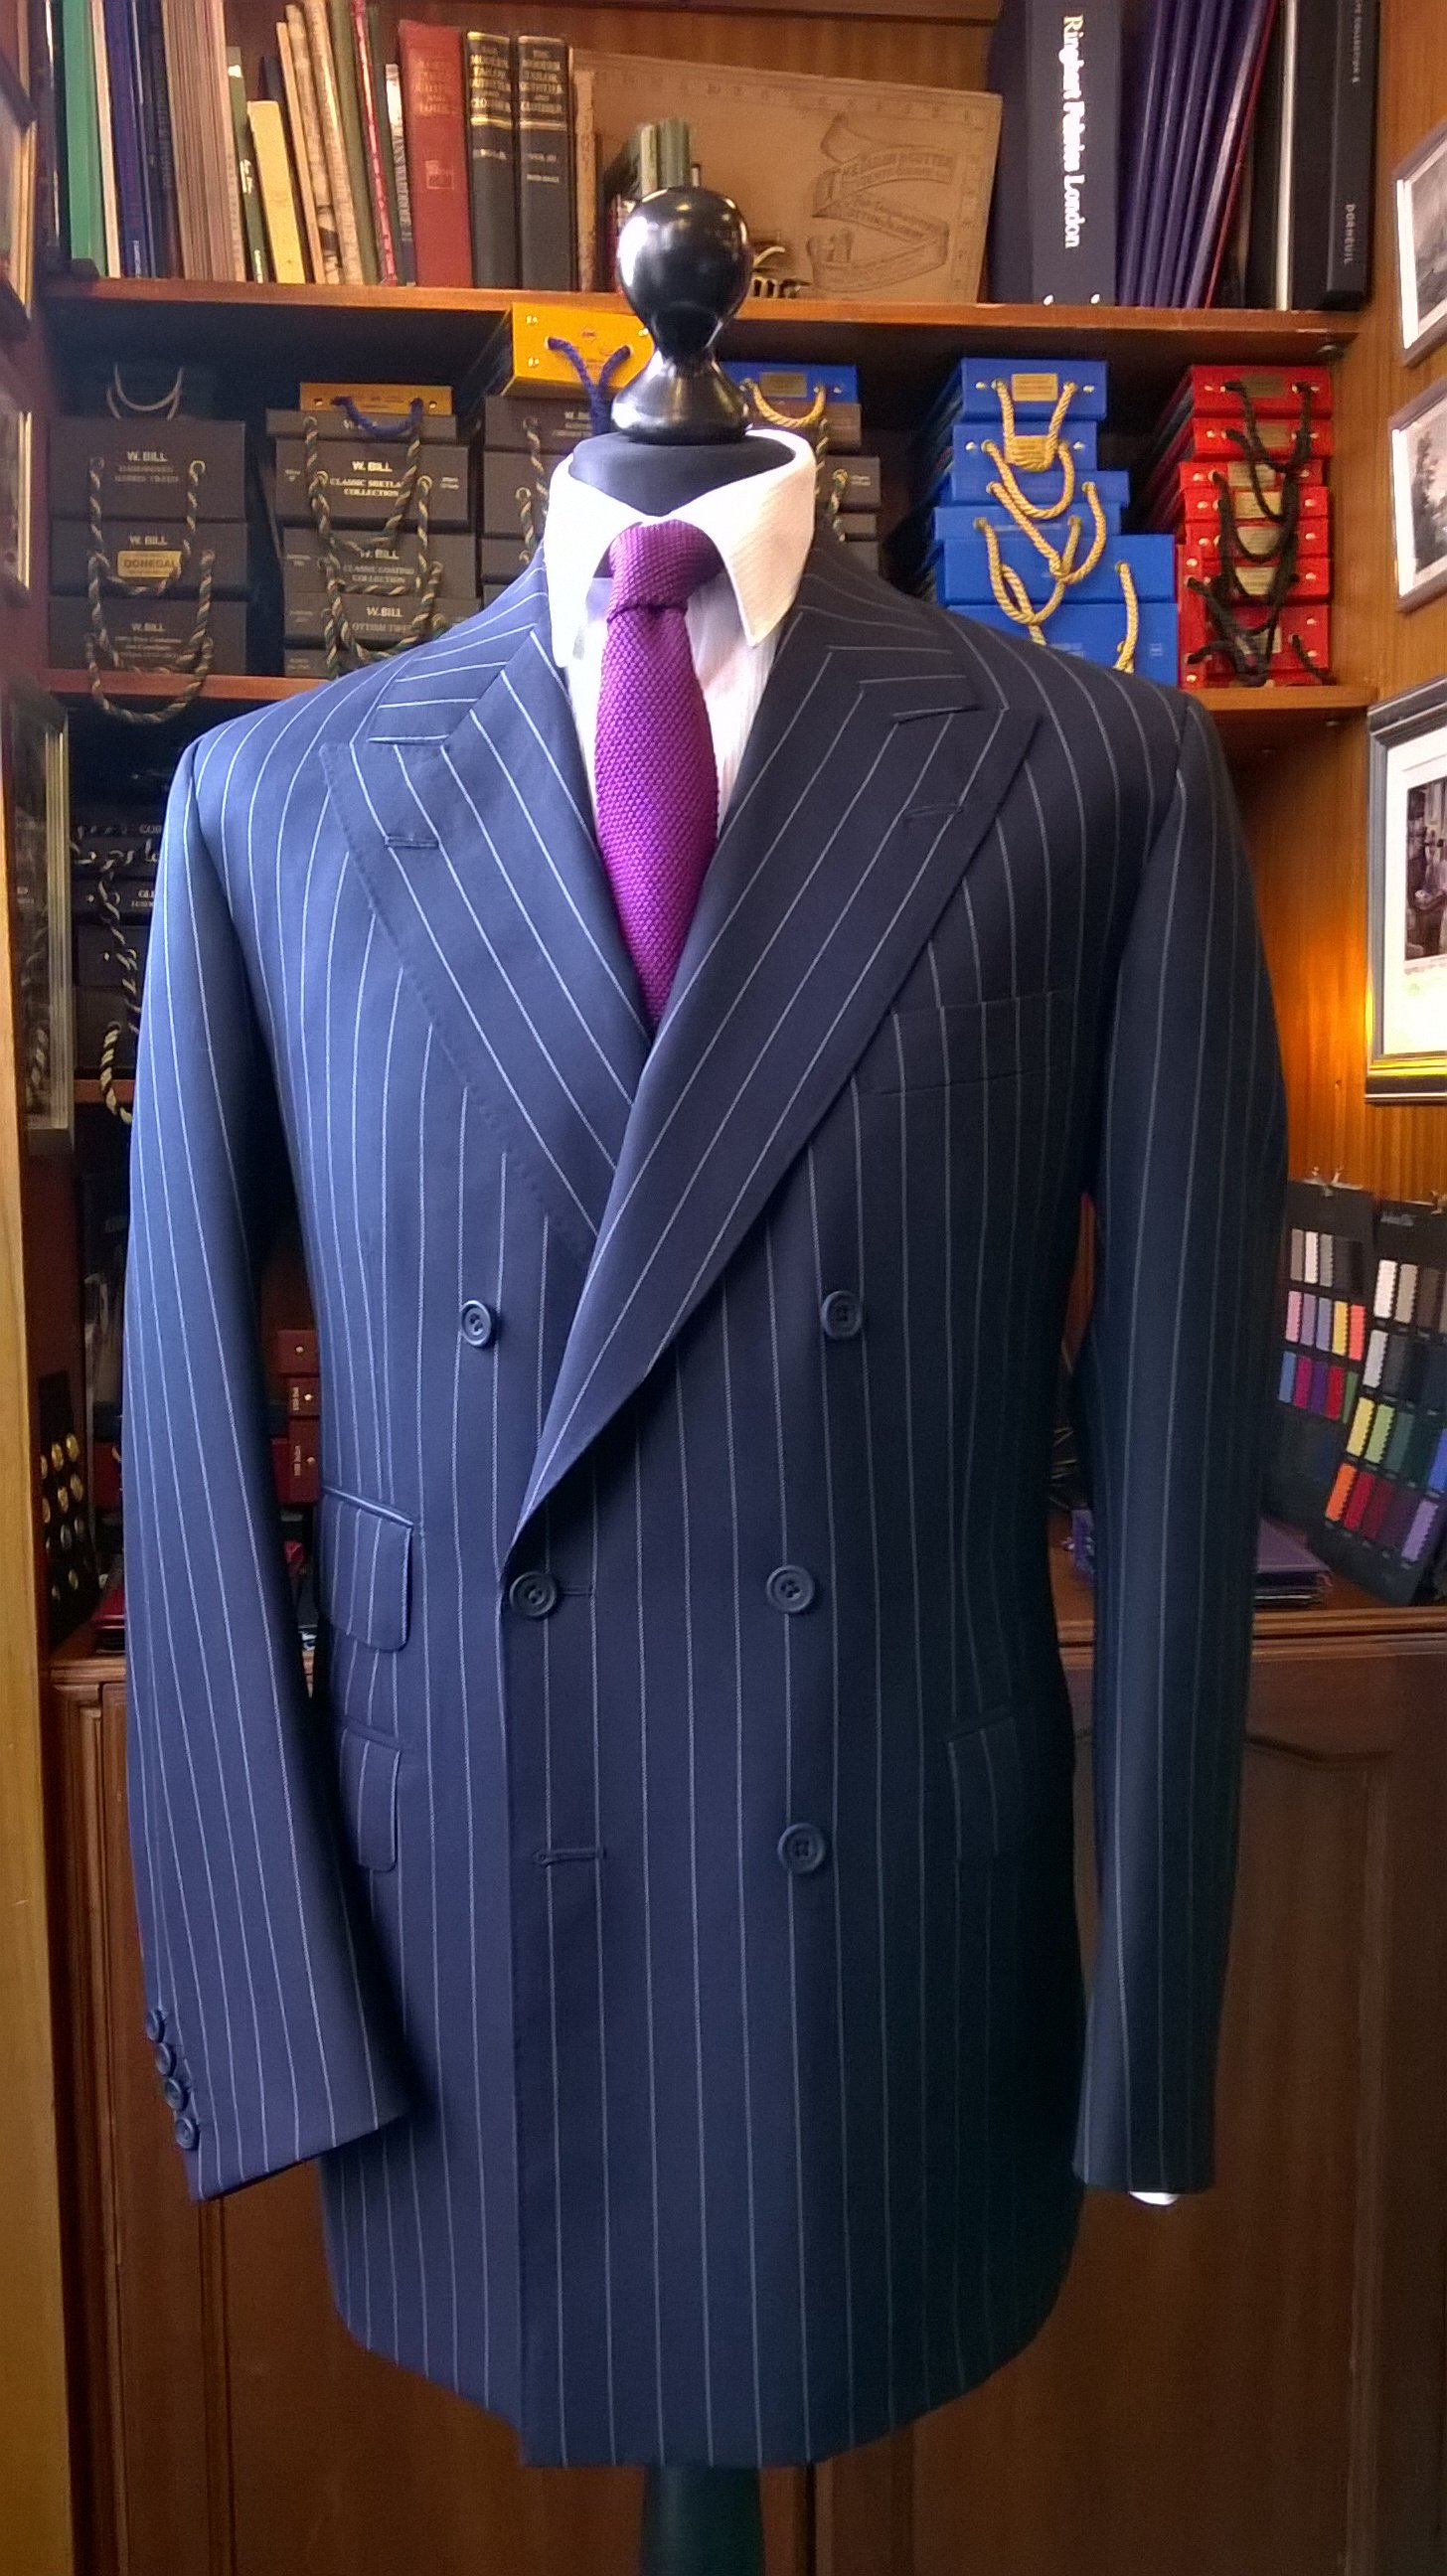 A recent navy chalkstripe double-breasted suit made by D. Major Bespoke Tailors